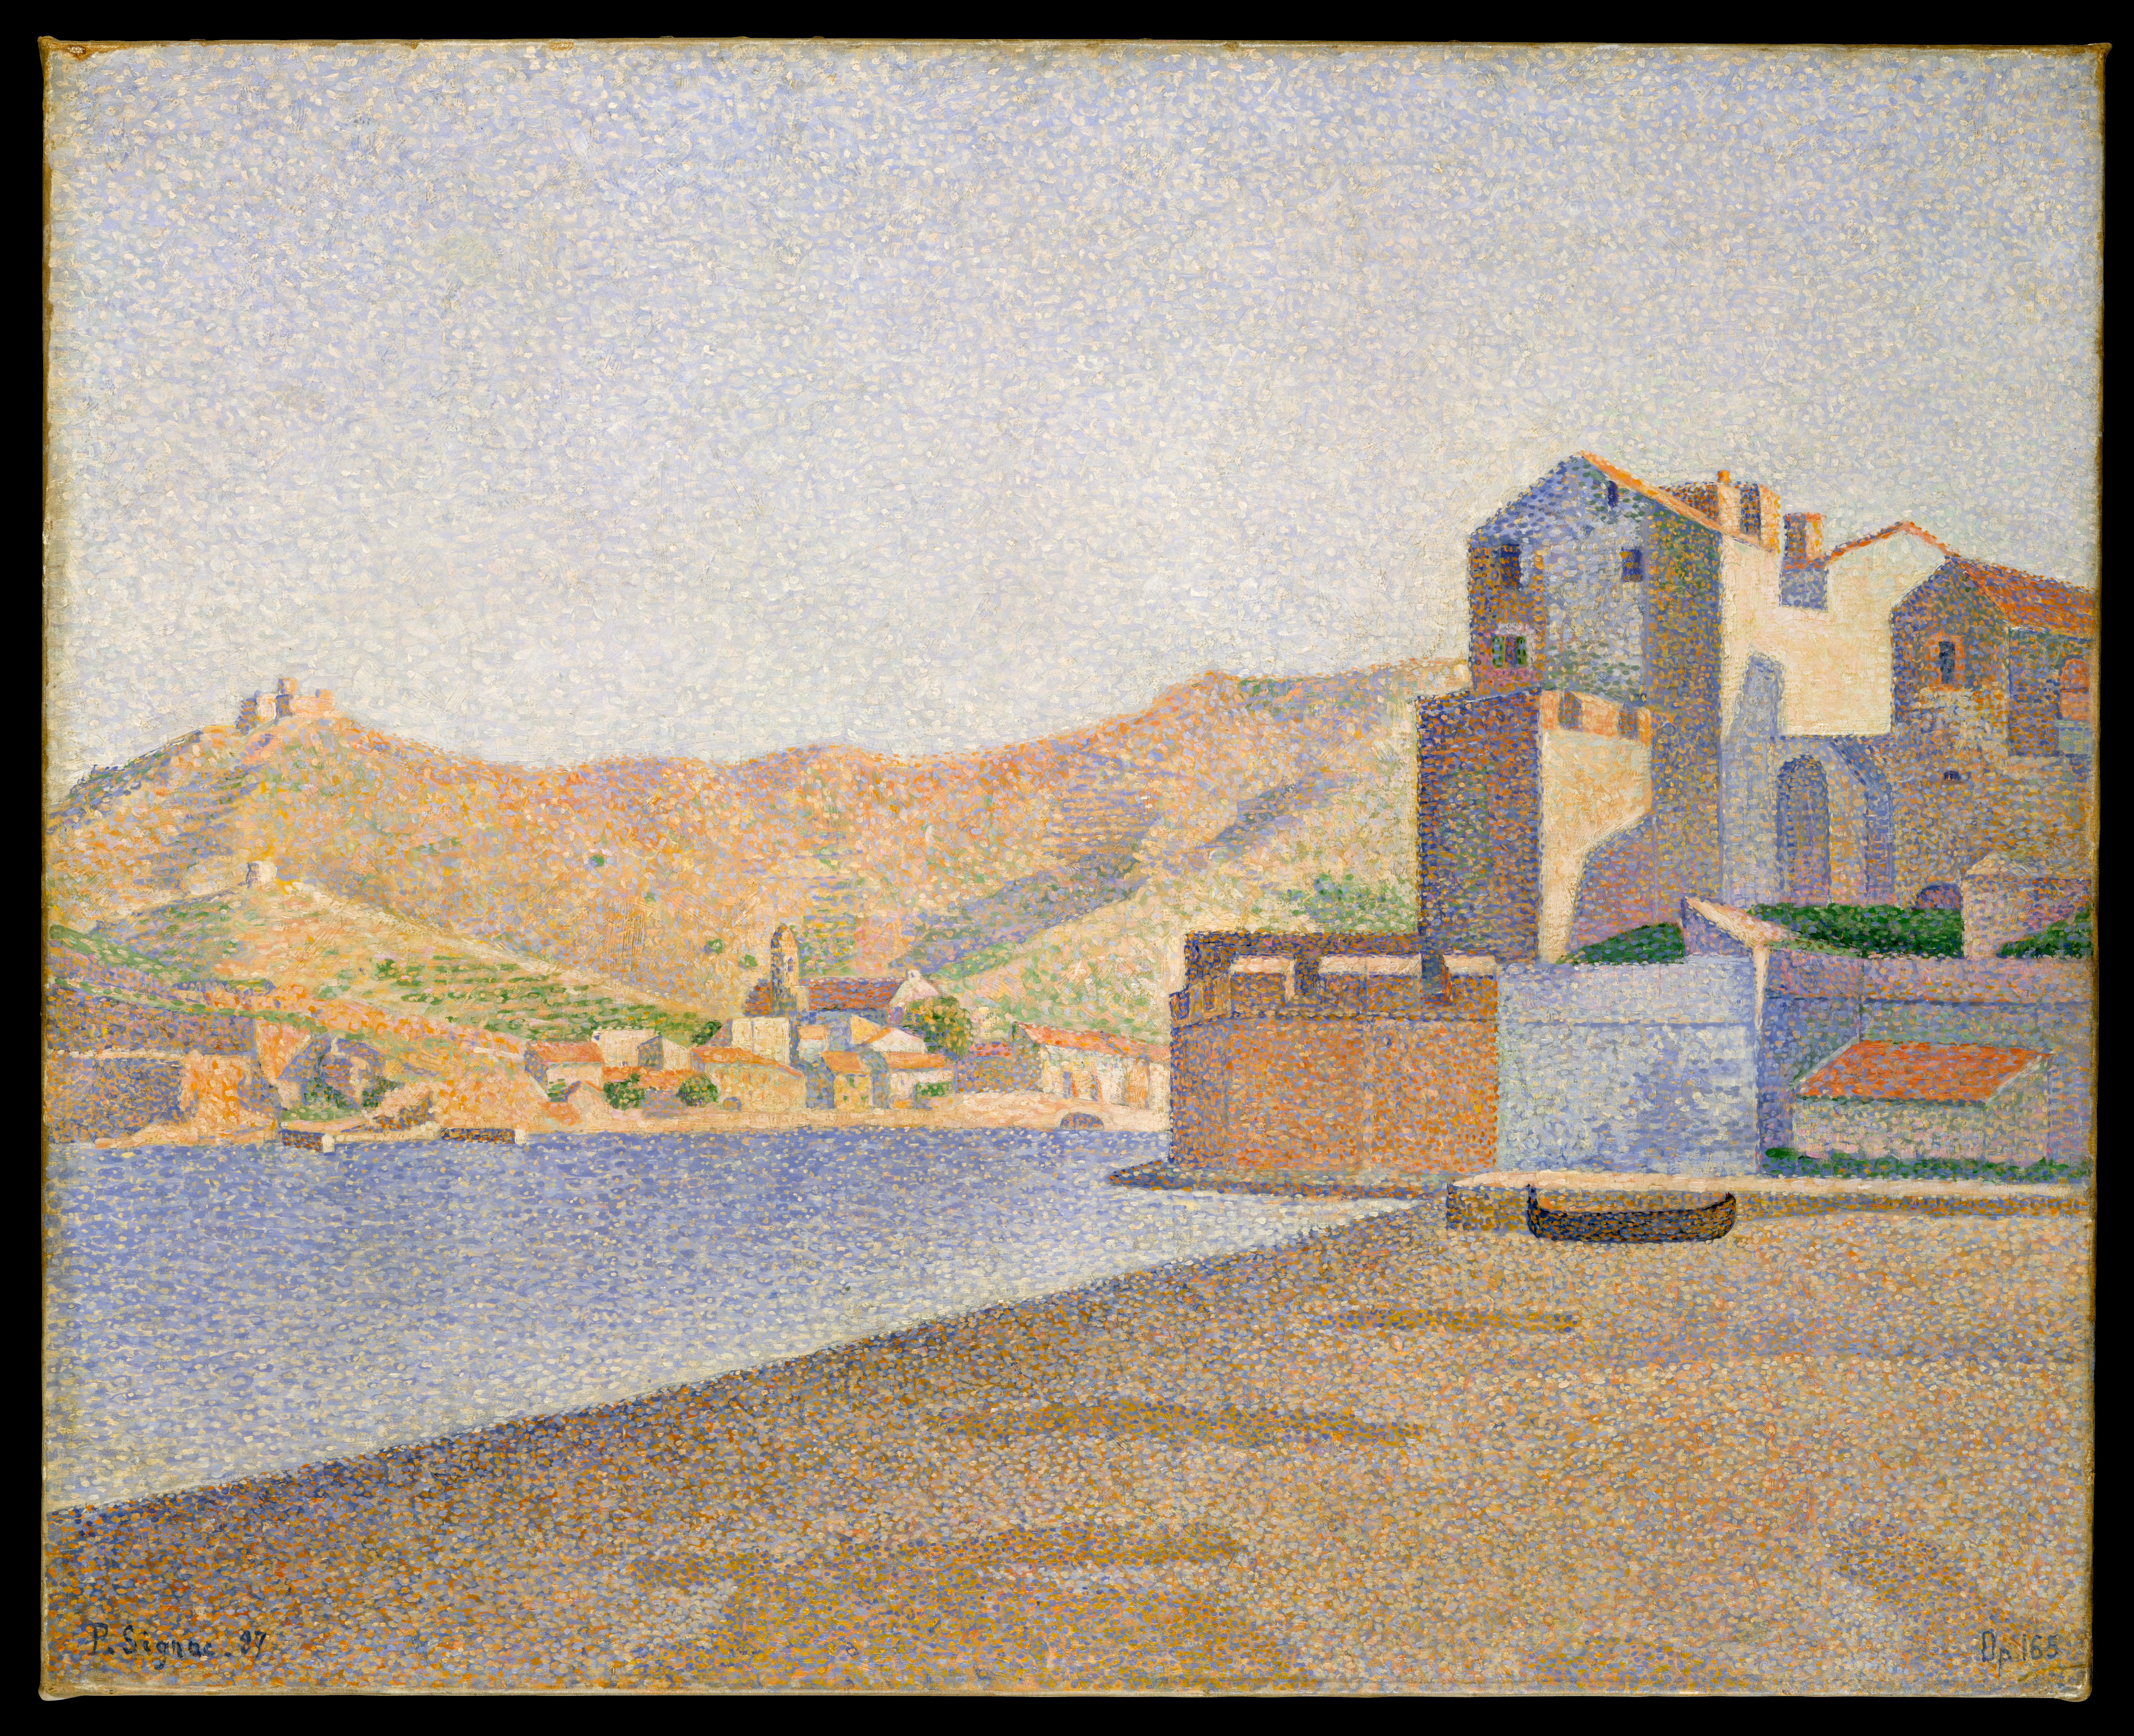 http://upload.wikimedia.org/wikipedia/commons/8/88/Paul_Signac_Collioure.jpg